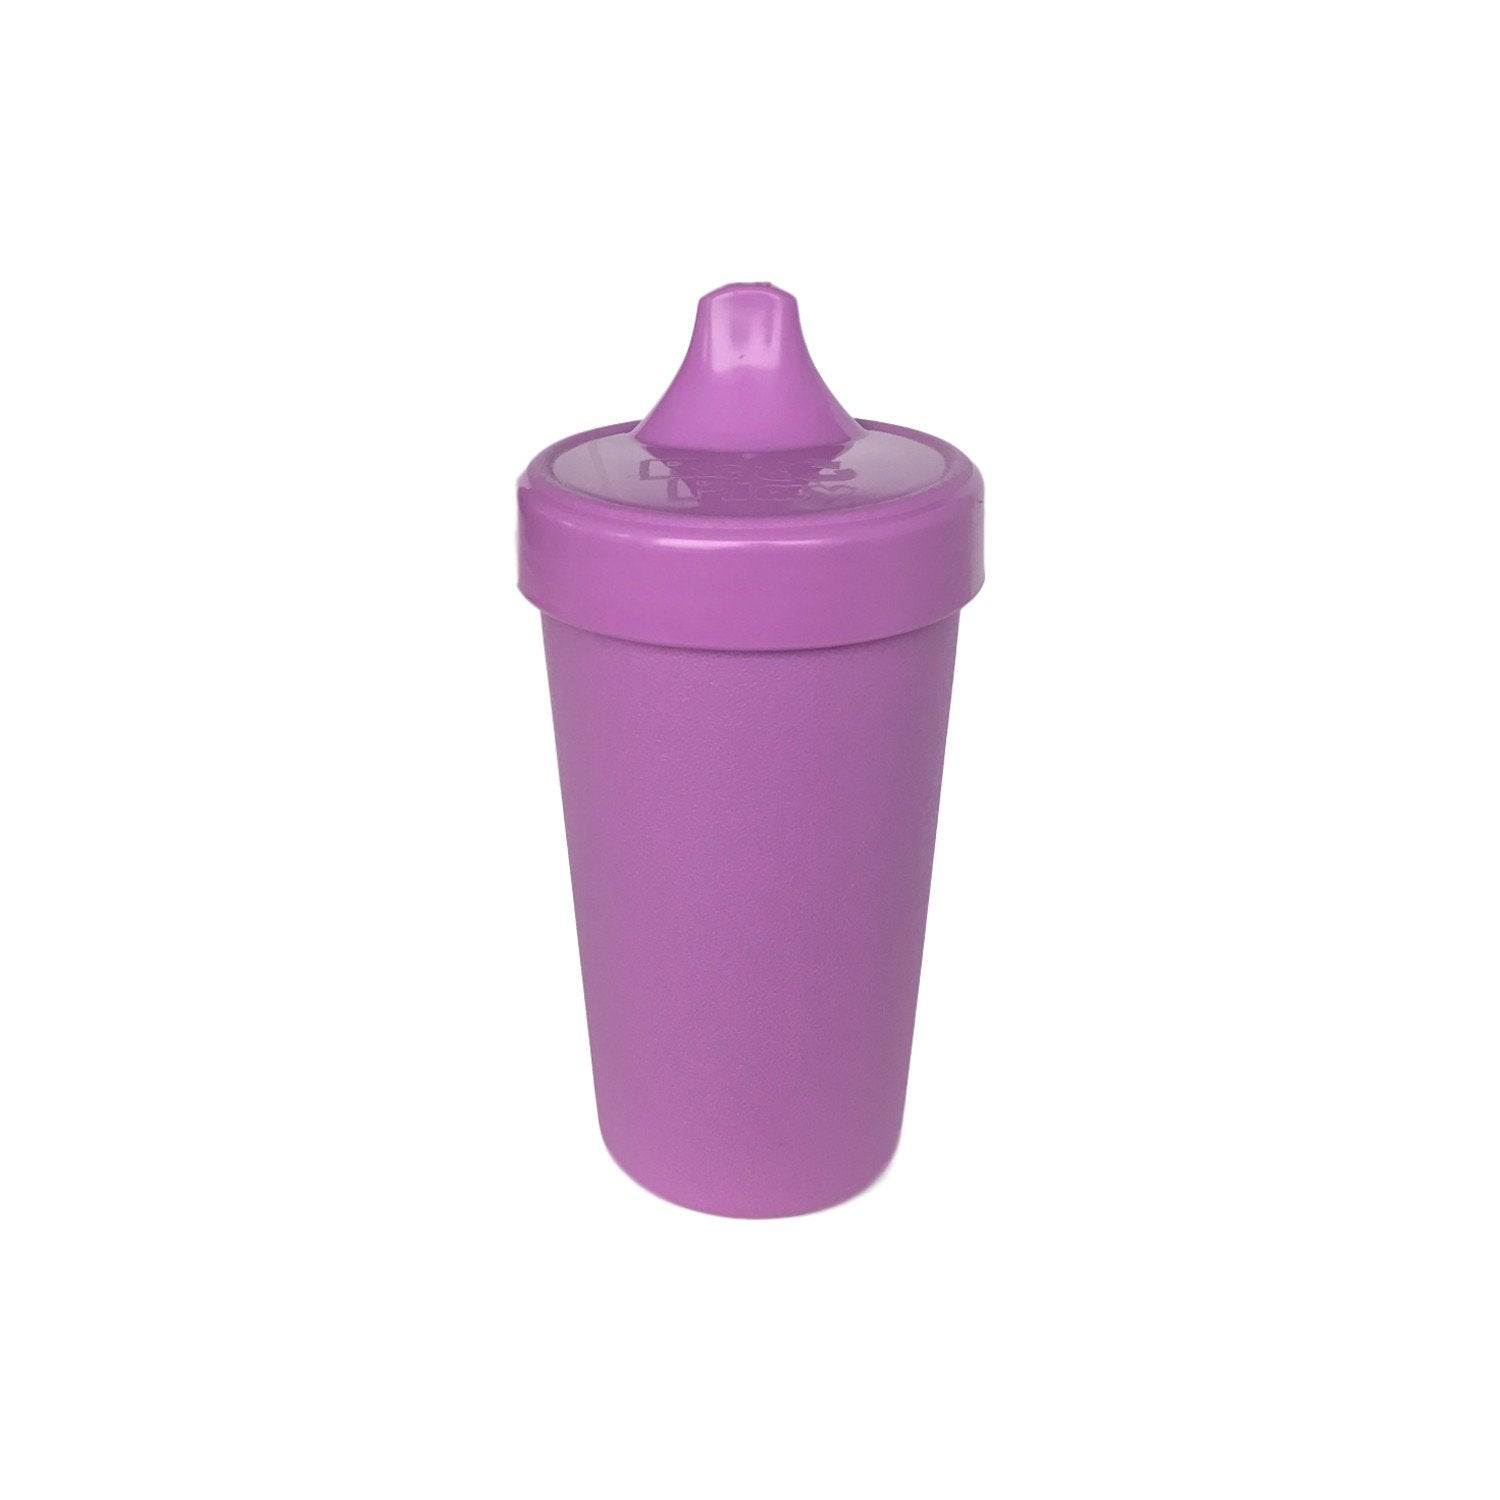 Replay Sippy Cup Replay Sippy Cups Purple at Little Earth Nest Eco Shop